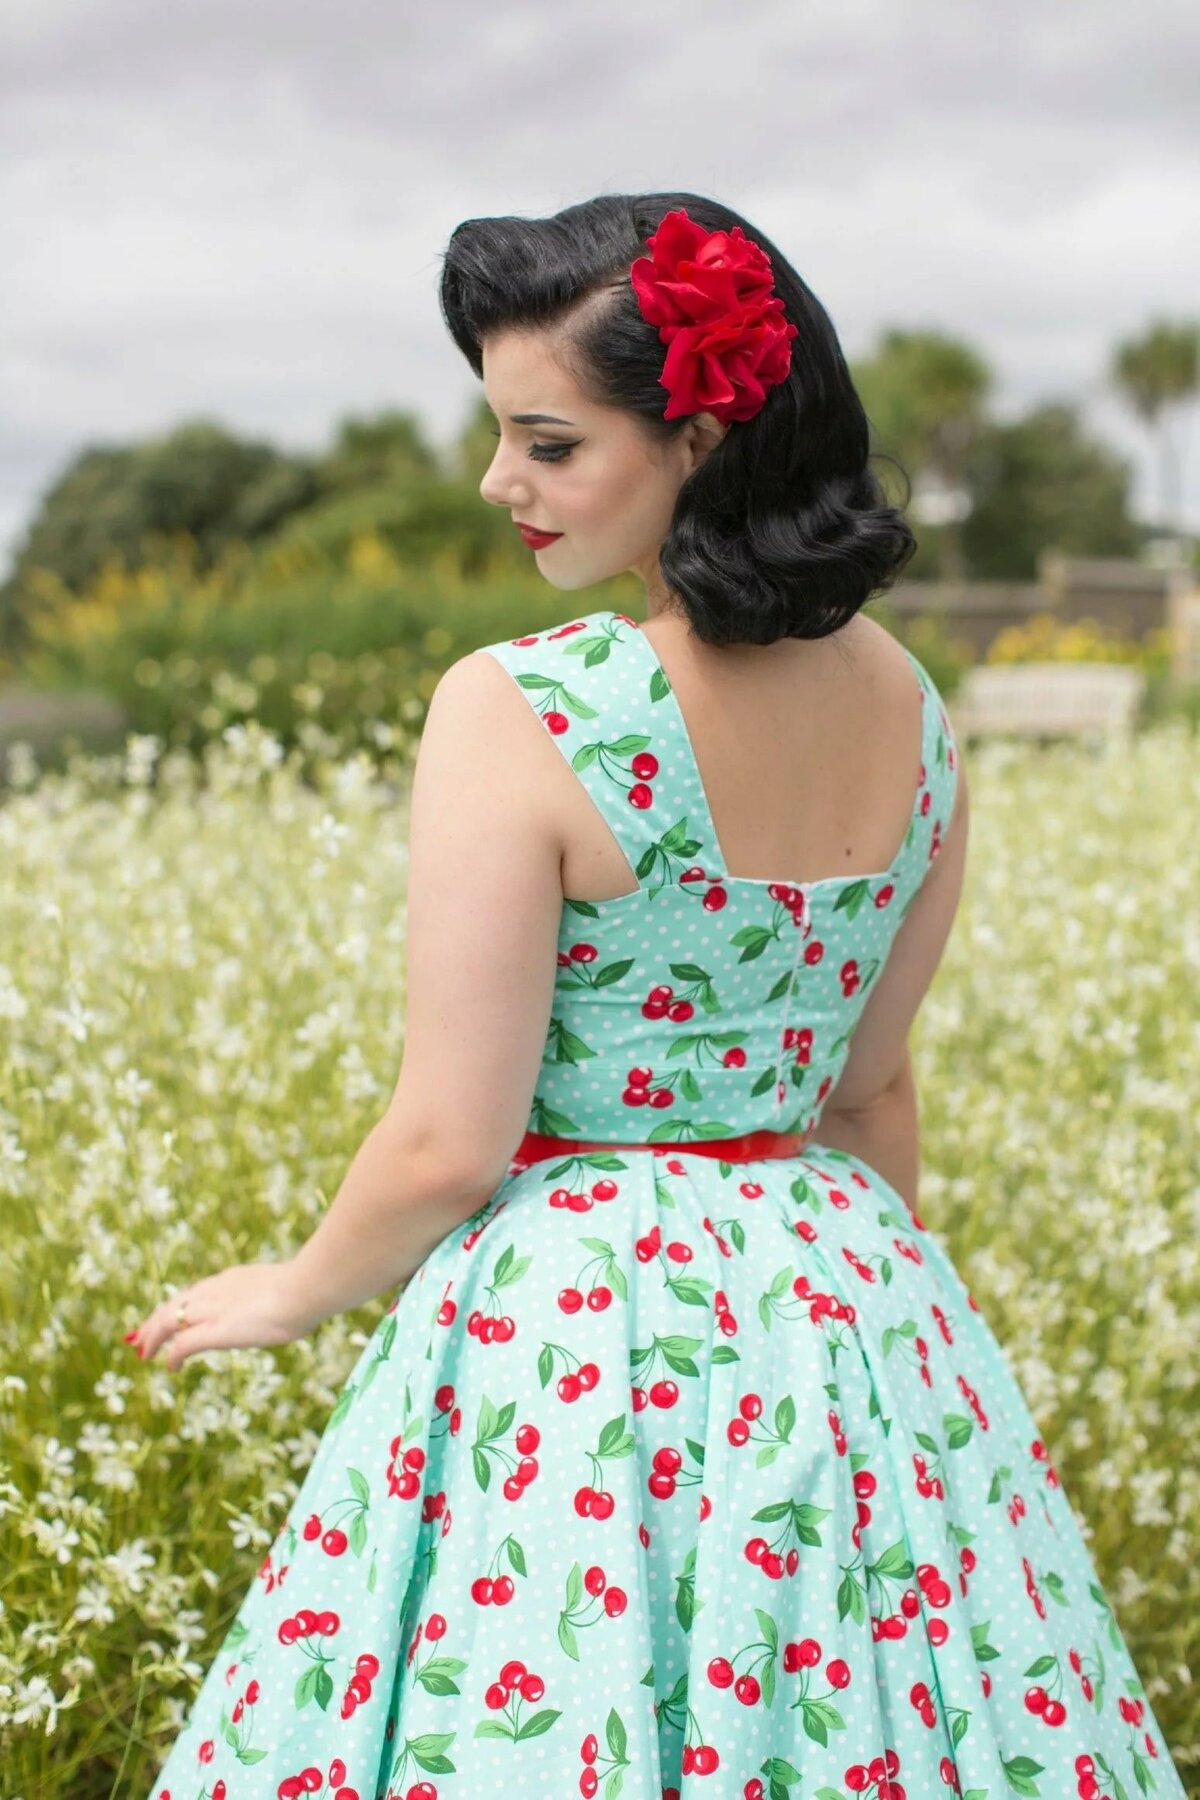 Vintage pin up girl dresses